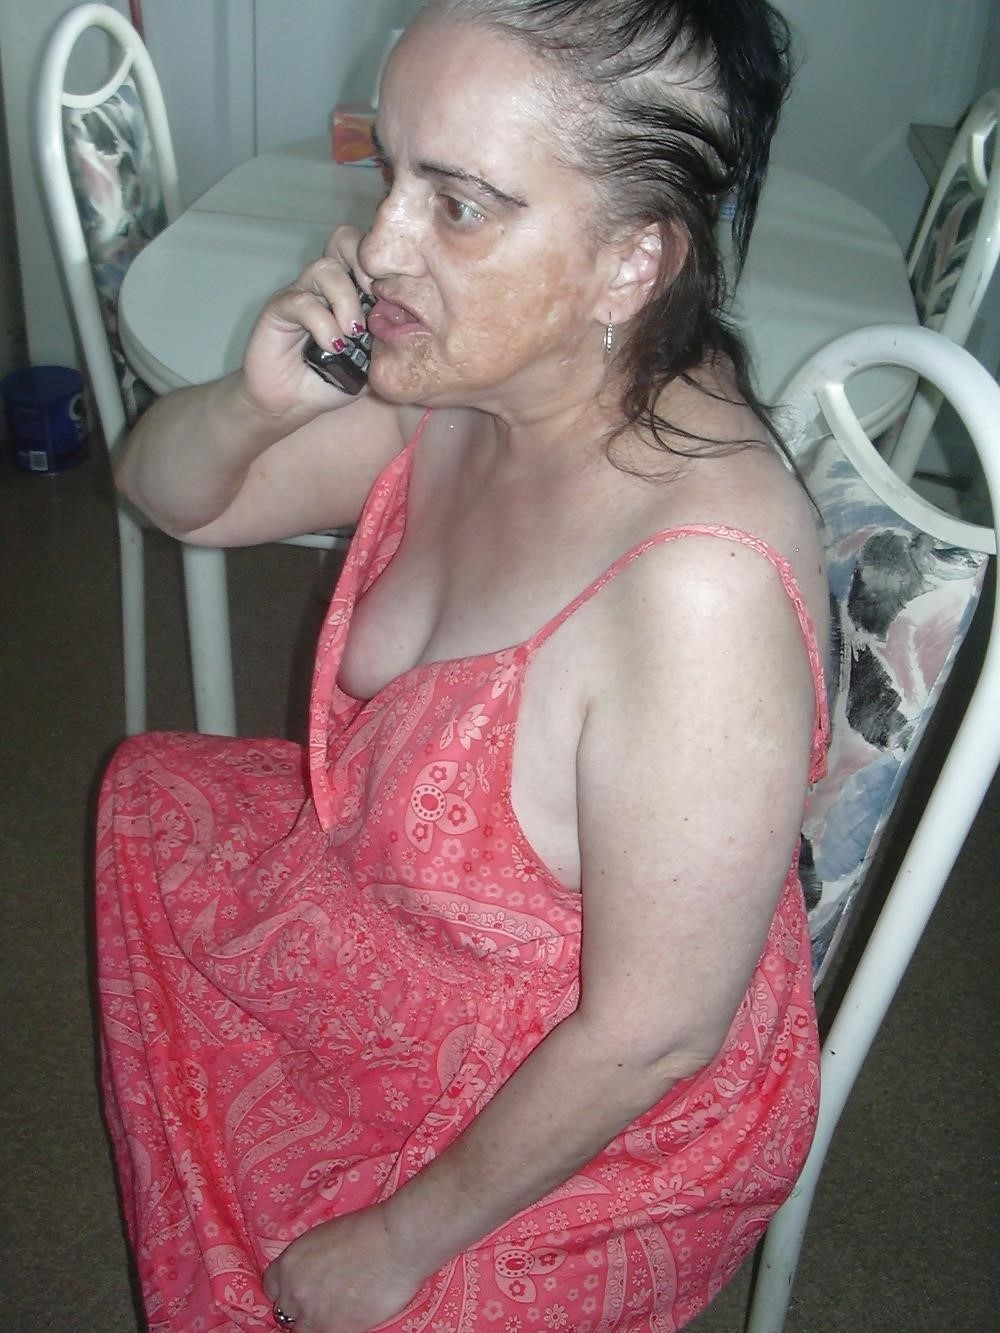 Naked pictures of ugly women-7742